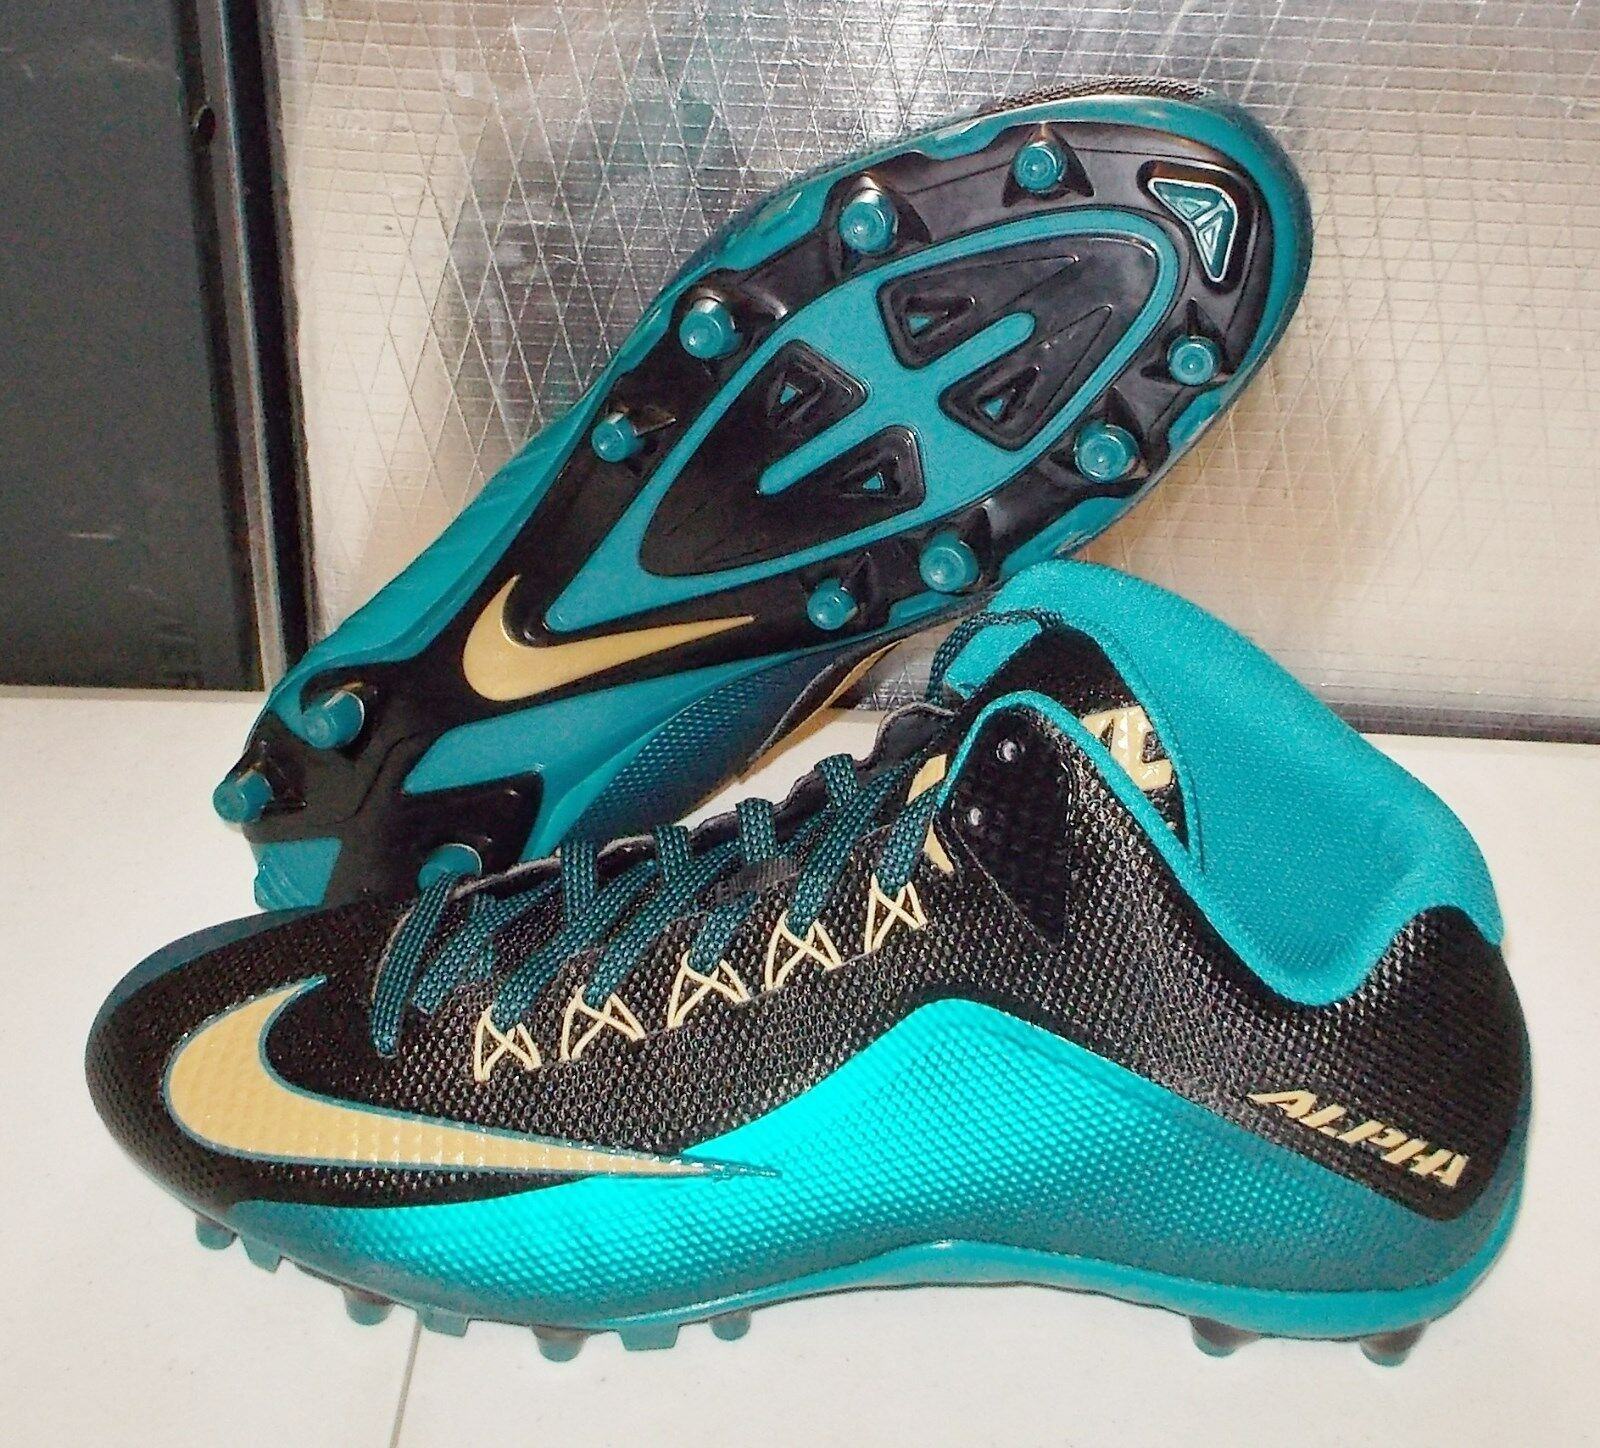 NEW NIKE ALPHA PRO 2 3/4 TD PF Football Cleats NikeSkin MENS Limited The most popular shoes for men and women